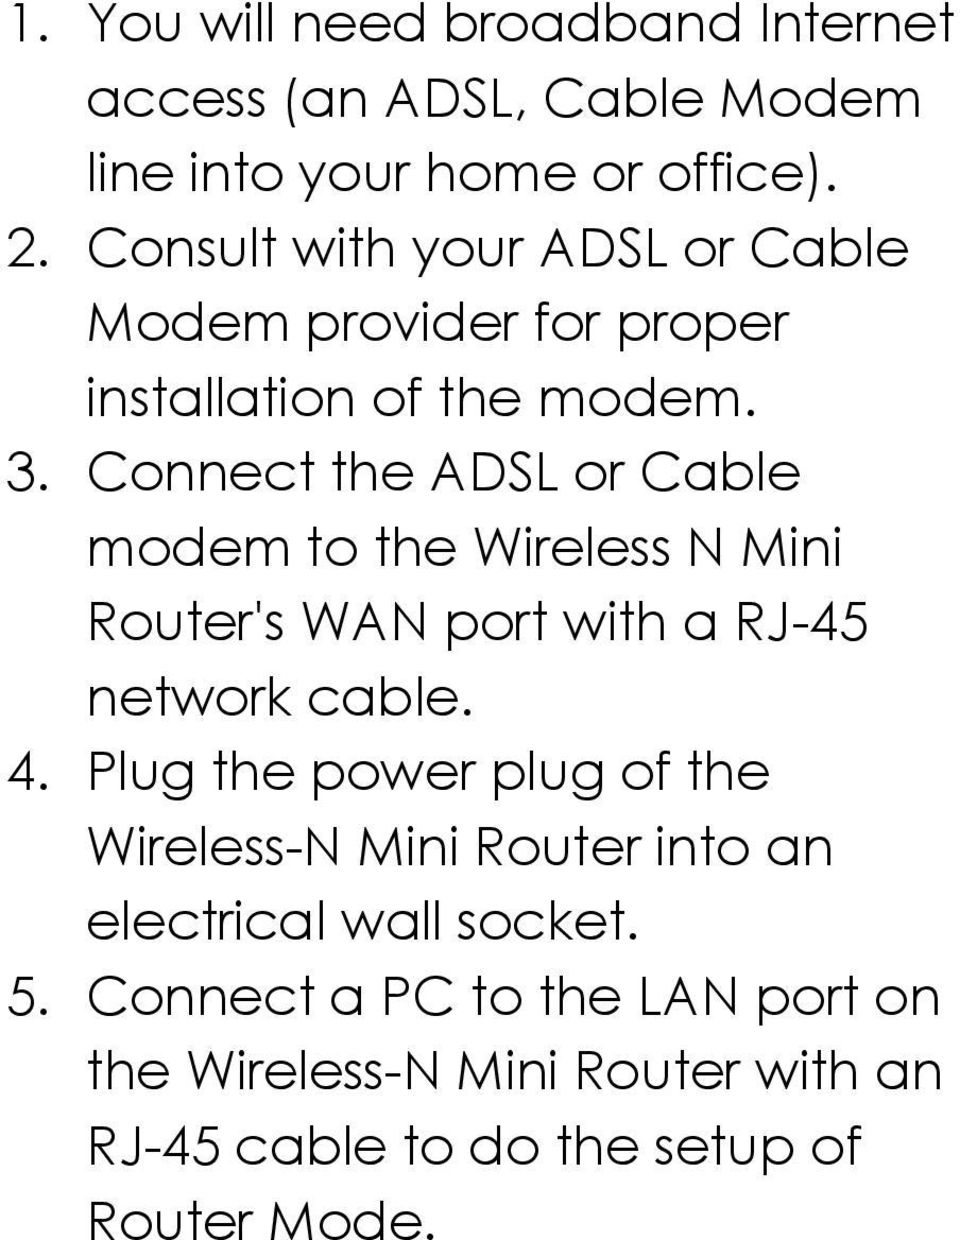 Connect the ADSL or Cable modem to the Wireless N Mini Router's WAN port with a RJ-45 network cable. 4.